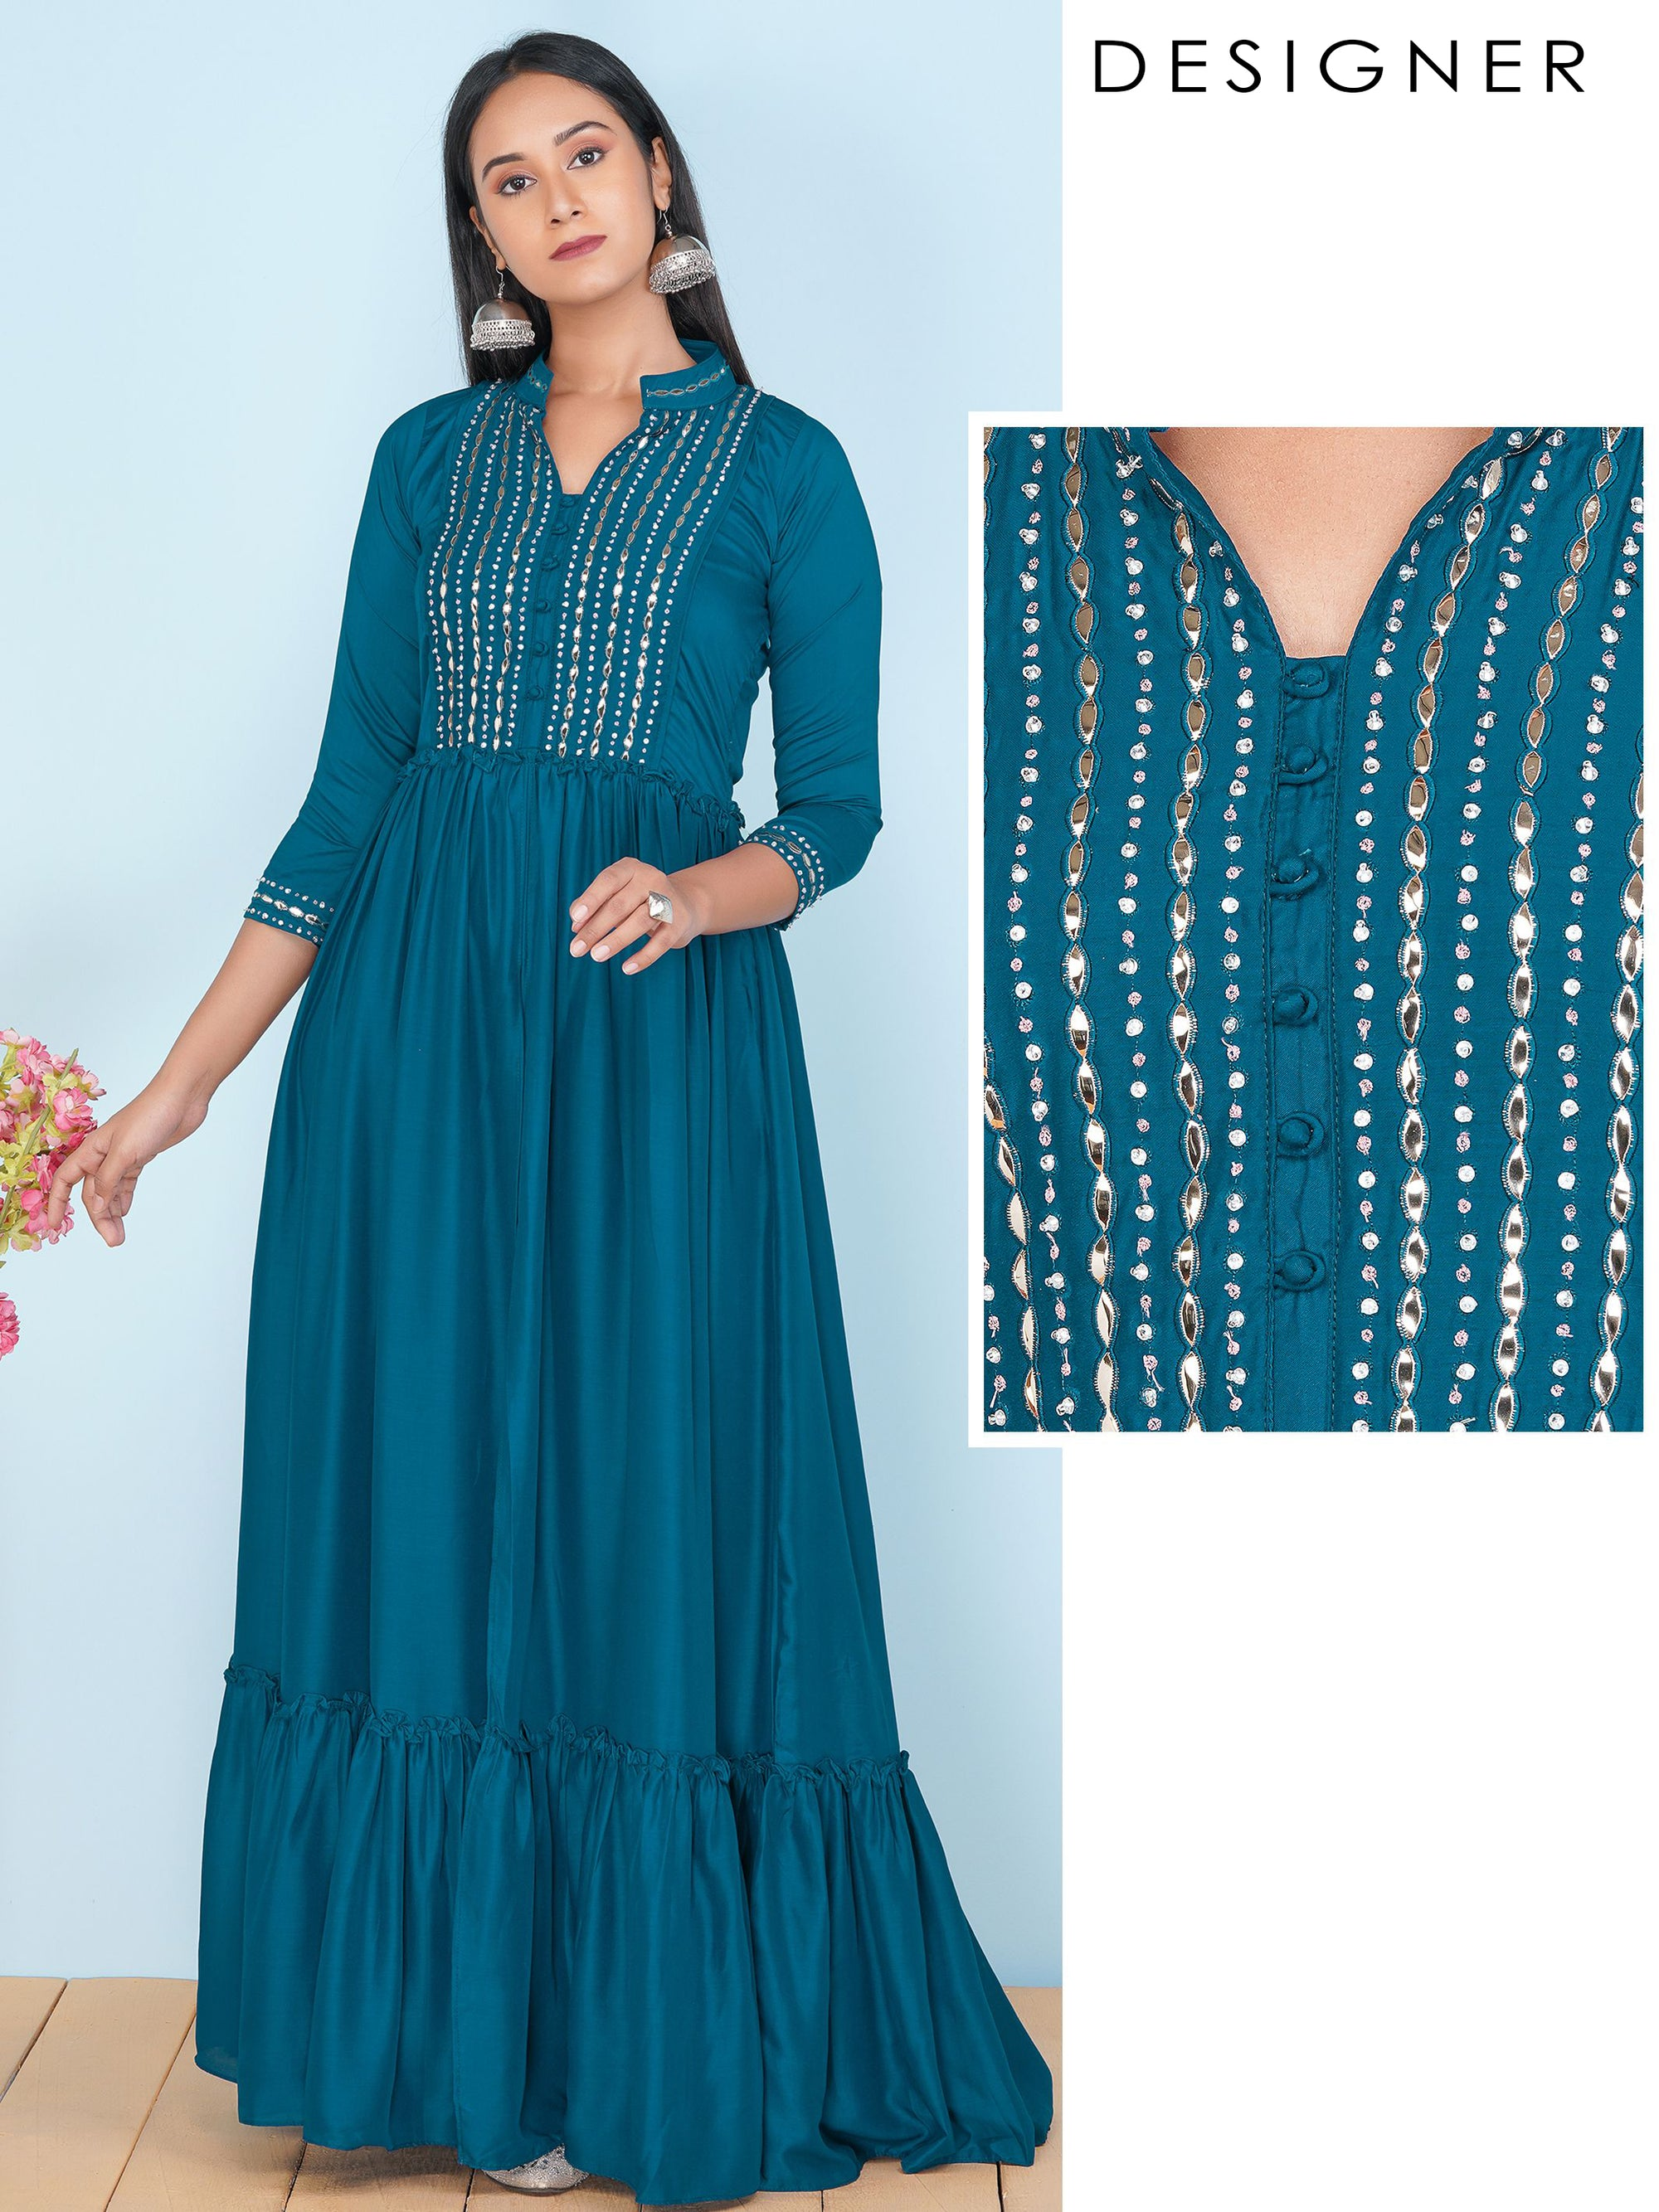 Sequins & Bead work Embellished Layered Maxi